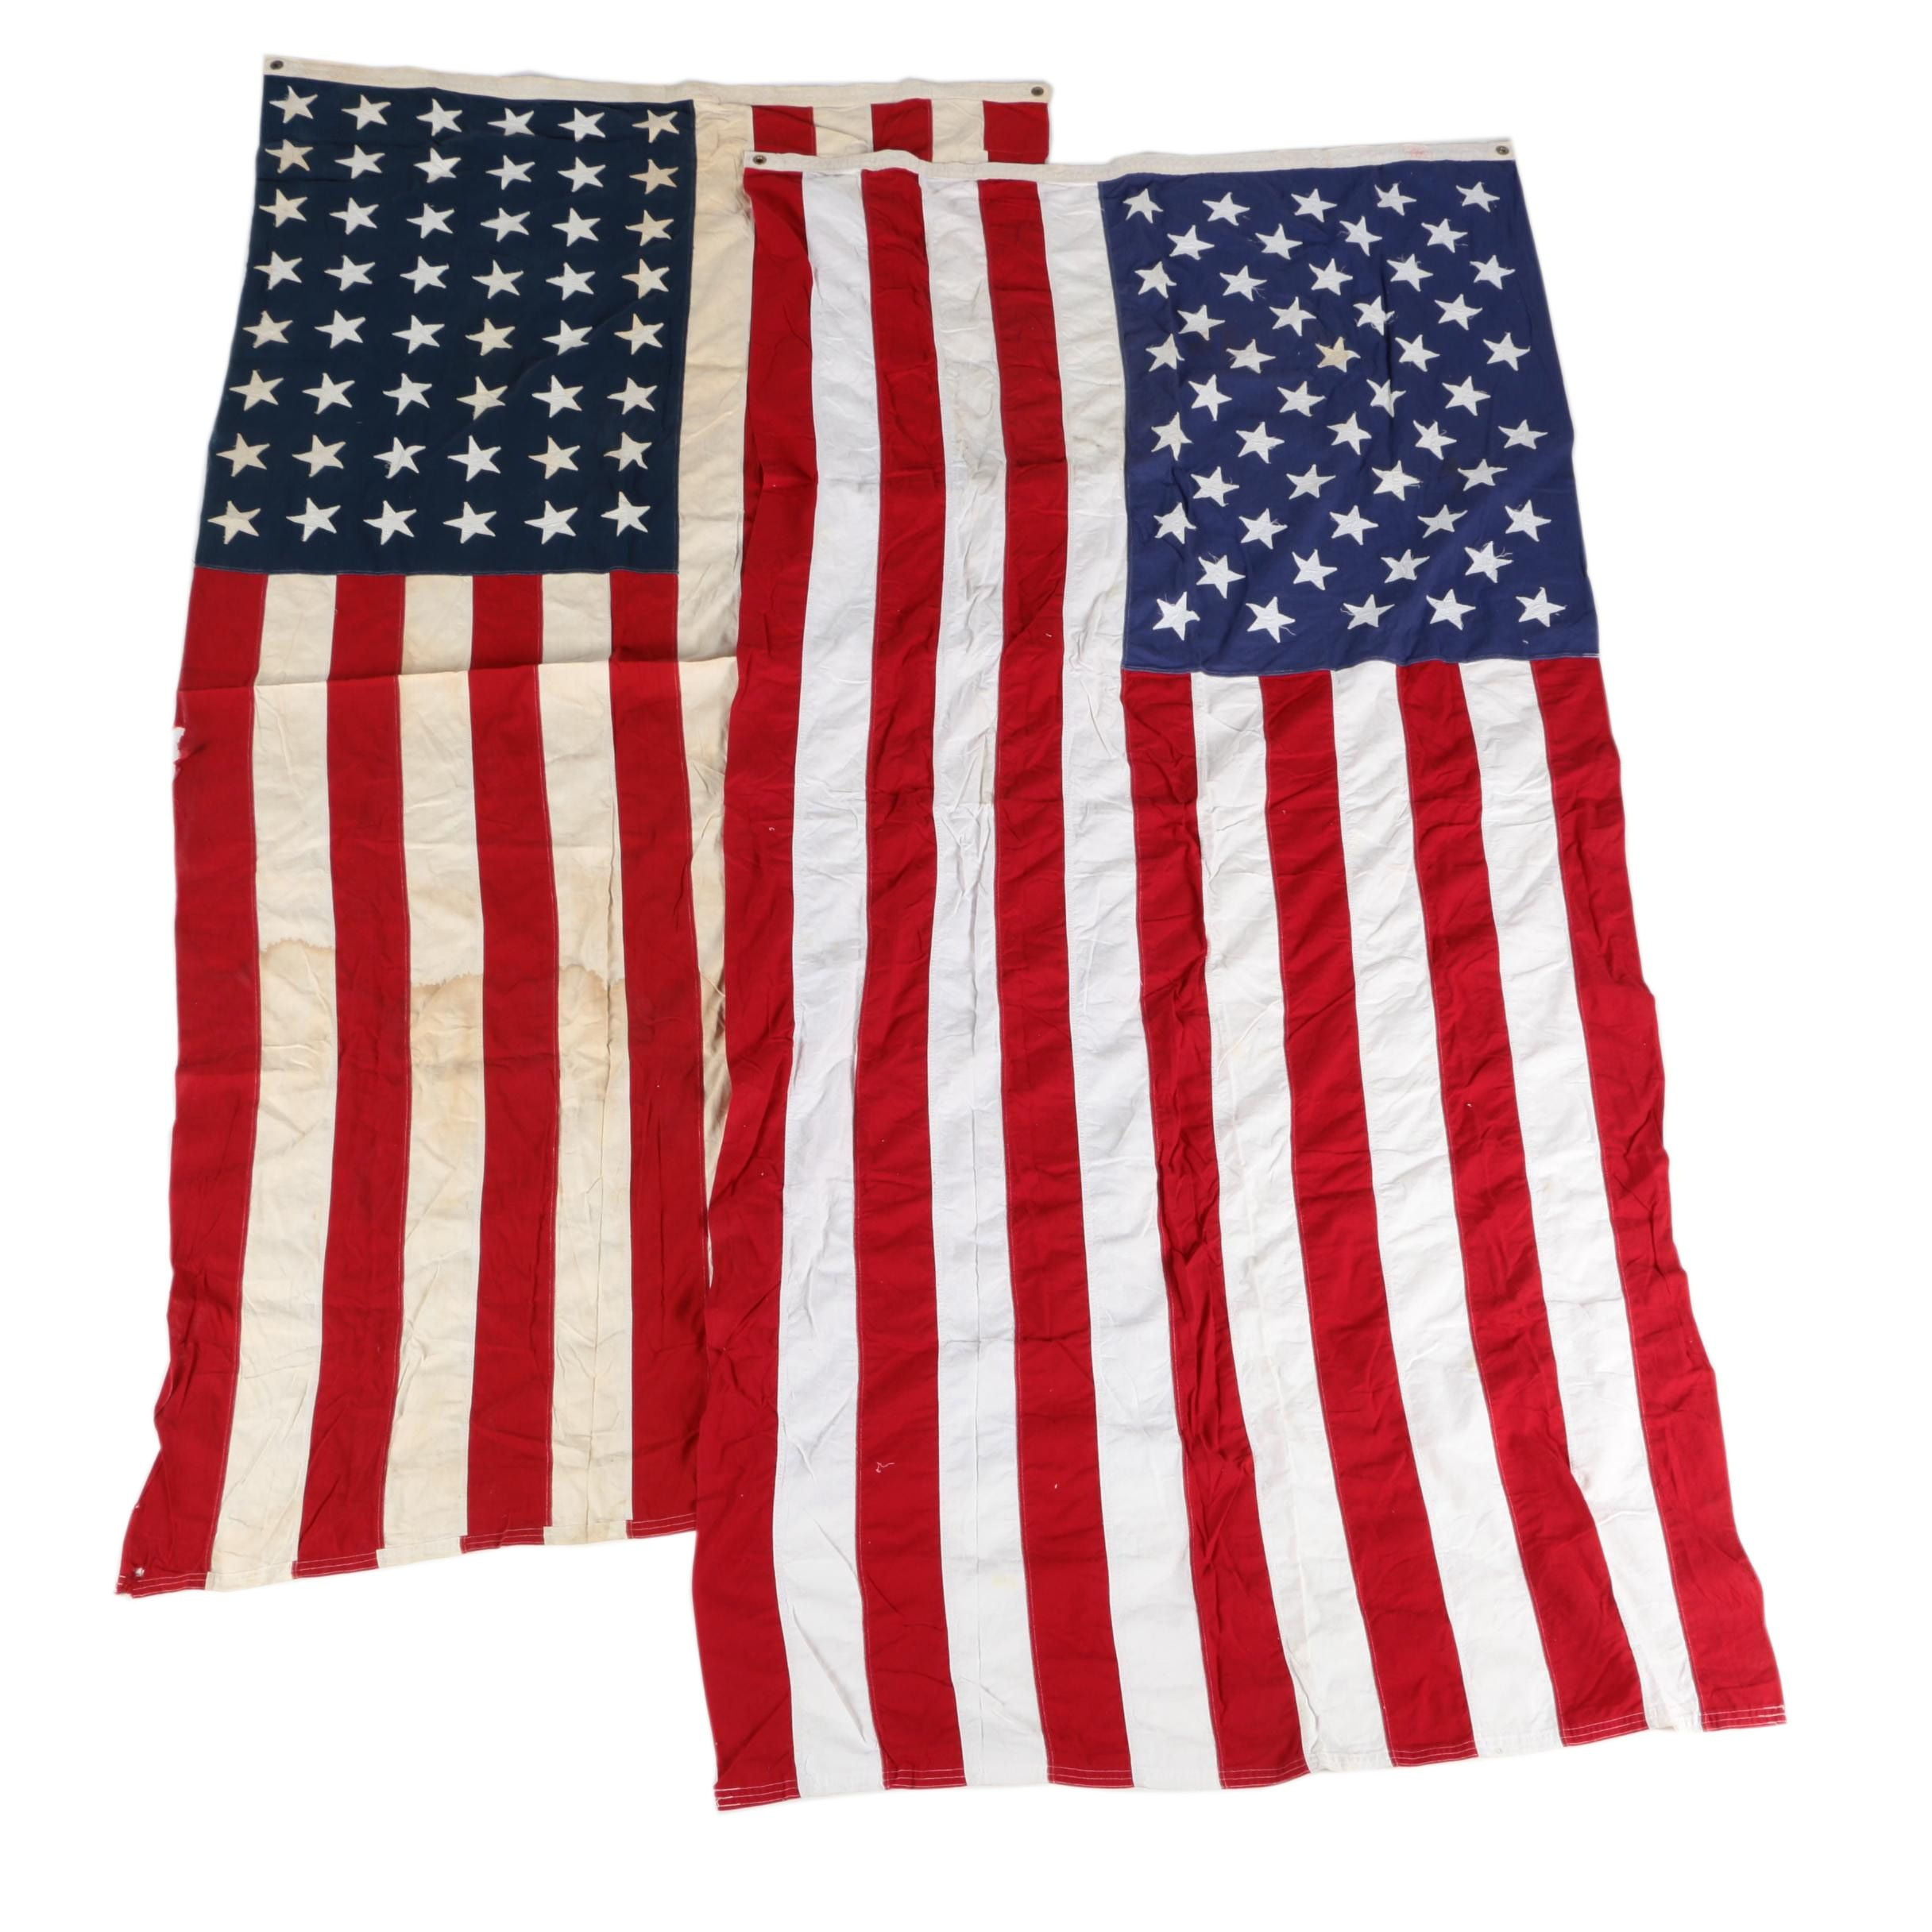 Vintage Cloth 48 Star and 50 Star American Flags